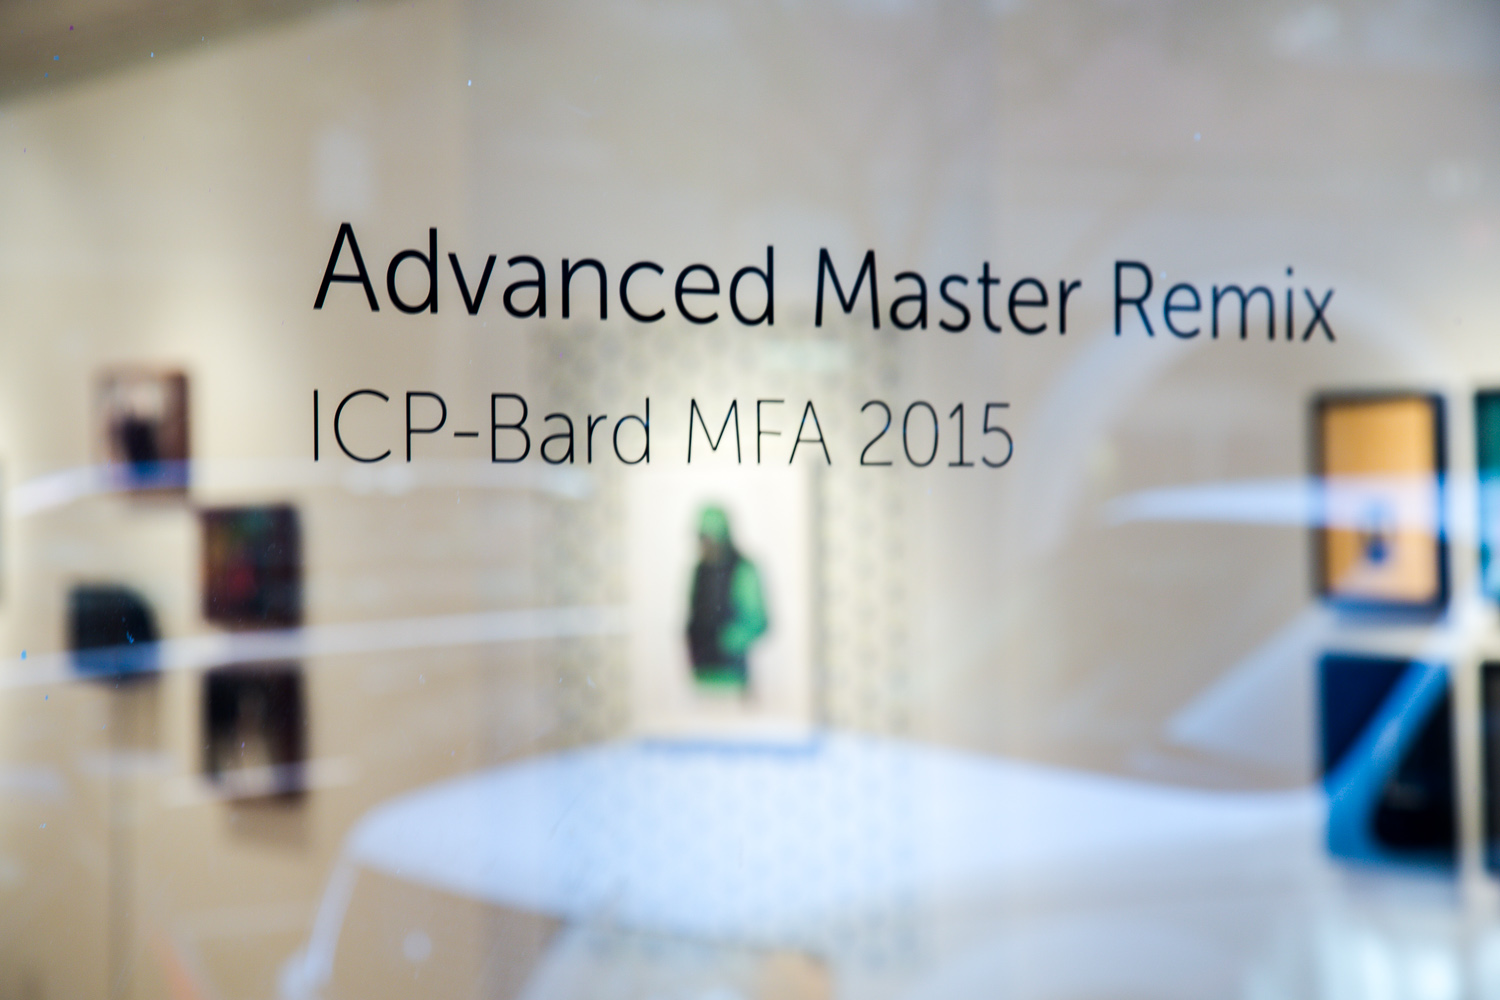 ICP-Bard Group MFA Show_Advanced Master Remix_Baxter Street CCNY_July 2015_Photo by Daniel Terna_websize.jpg